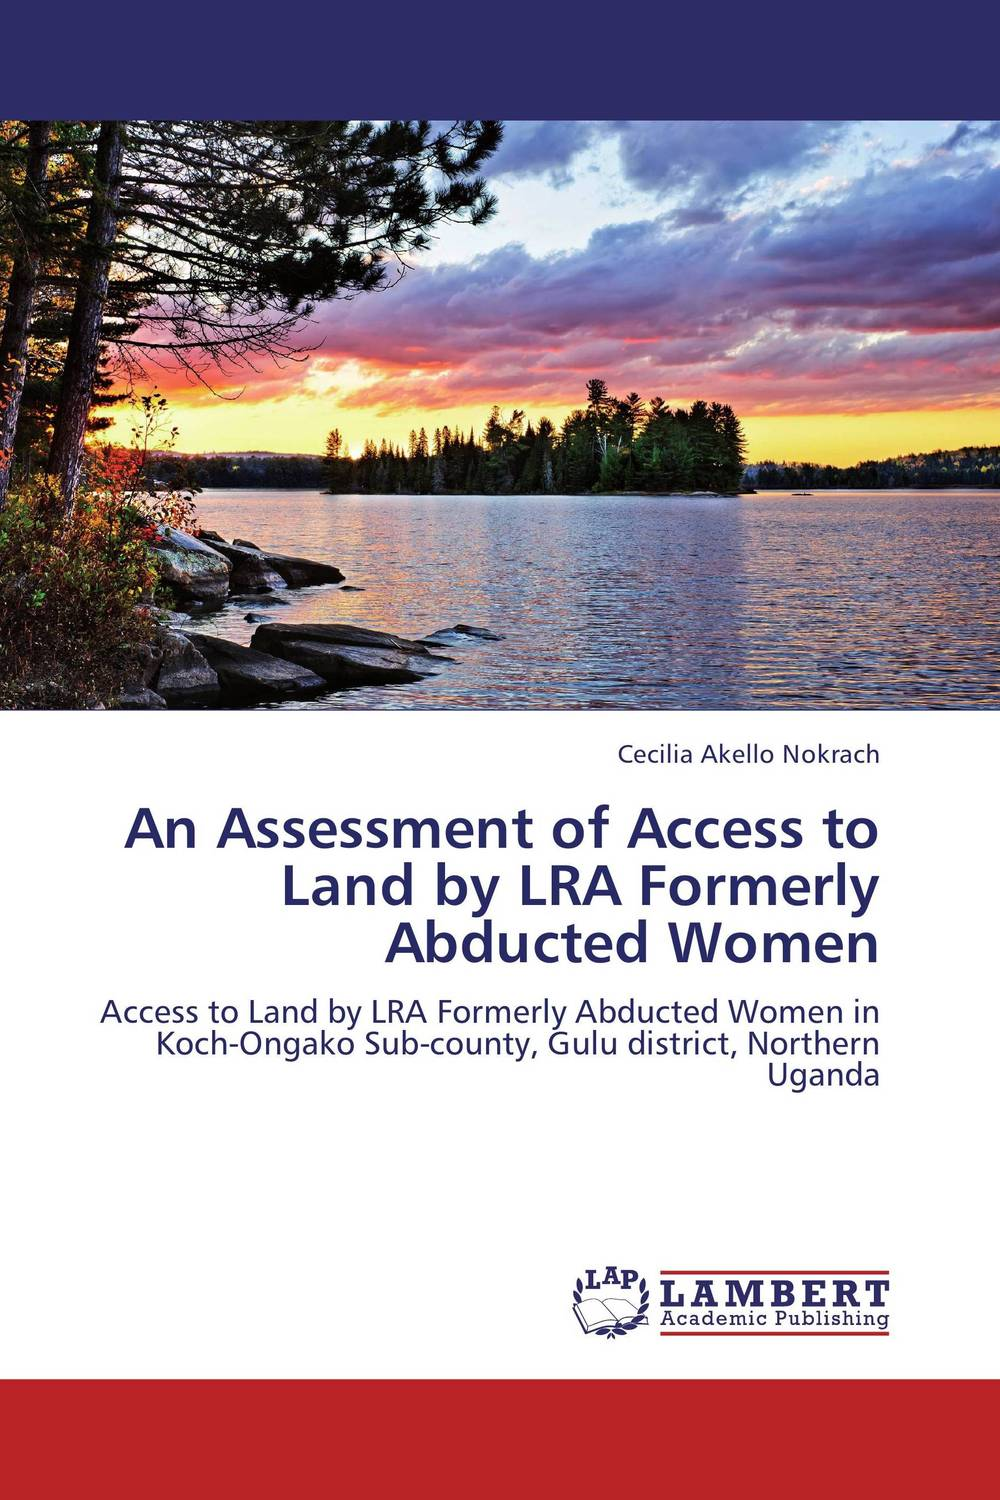 An Assessment of Access to Land by LRA Formerly Abducted Women voluntary associations in tsarist russia – science patriotism and civil society